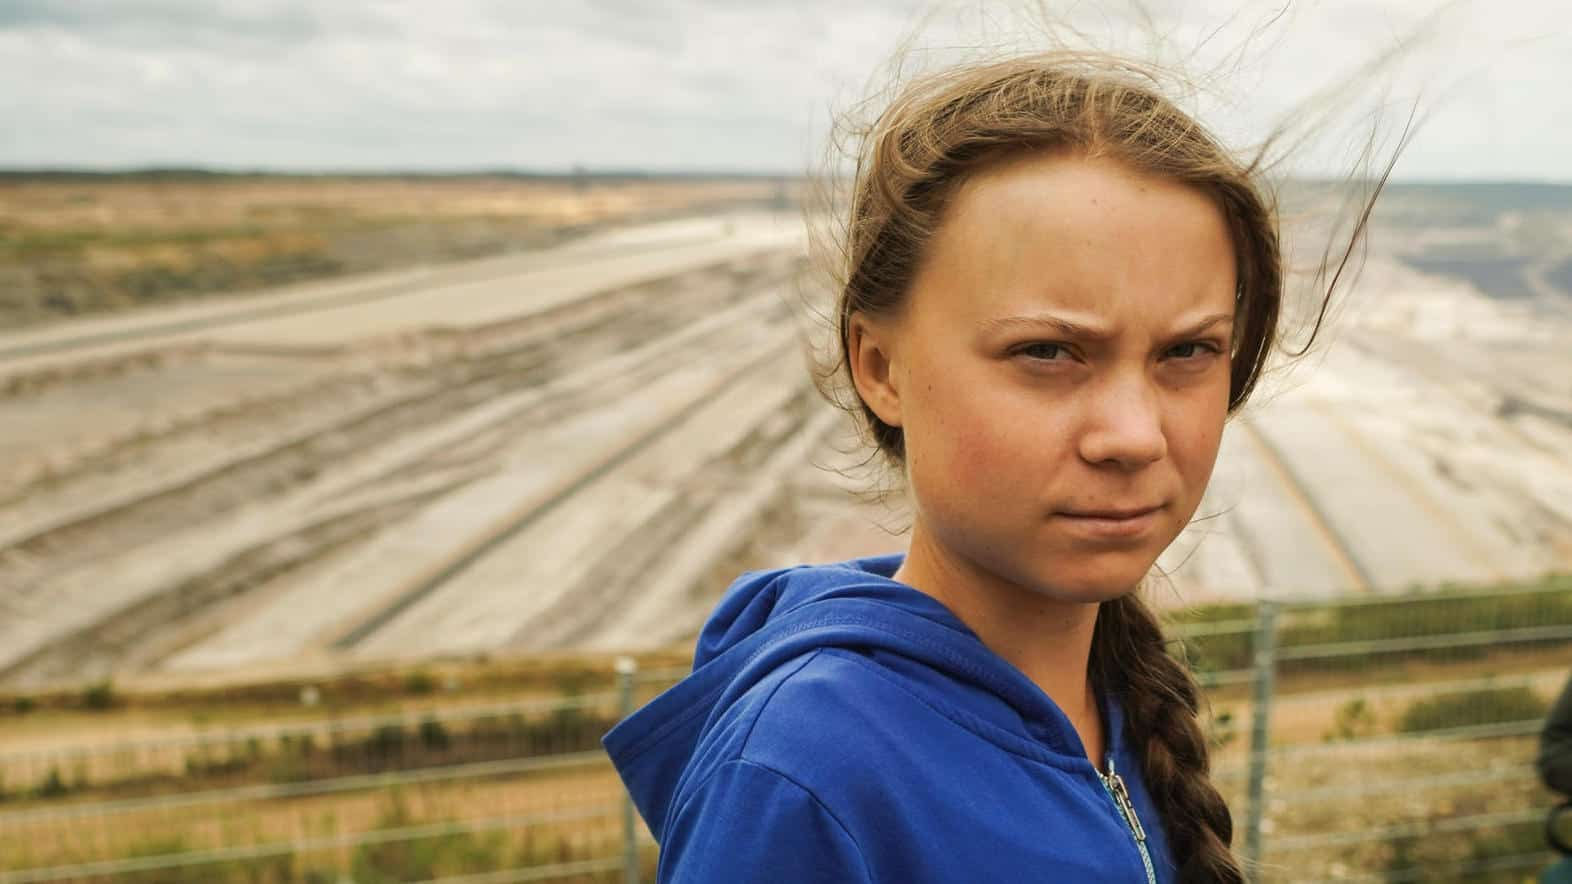 Who is Greta Thunberg and what can you learn from her?